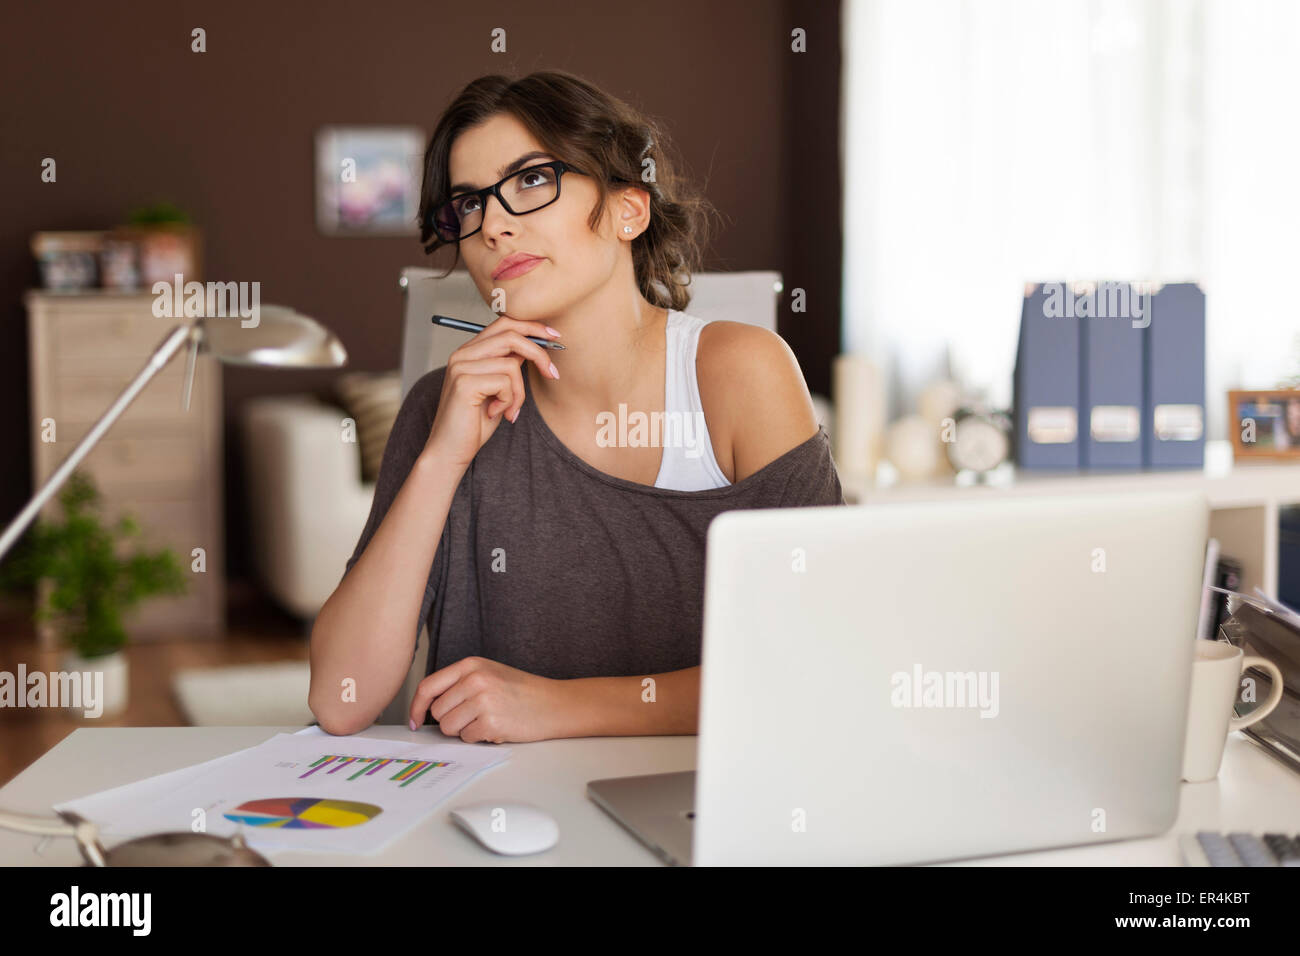 Thoughtful woman working at home. Debica, Poland - Stock Image